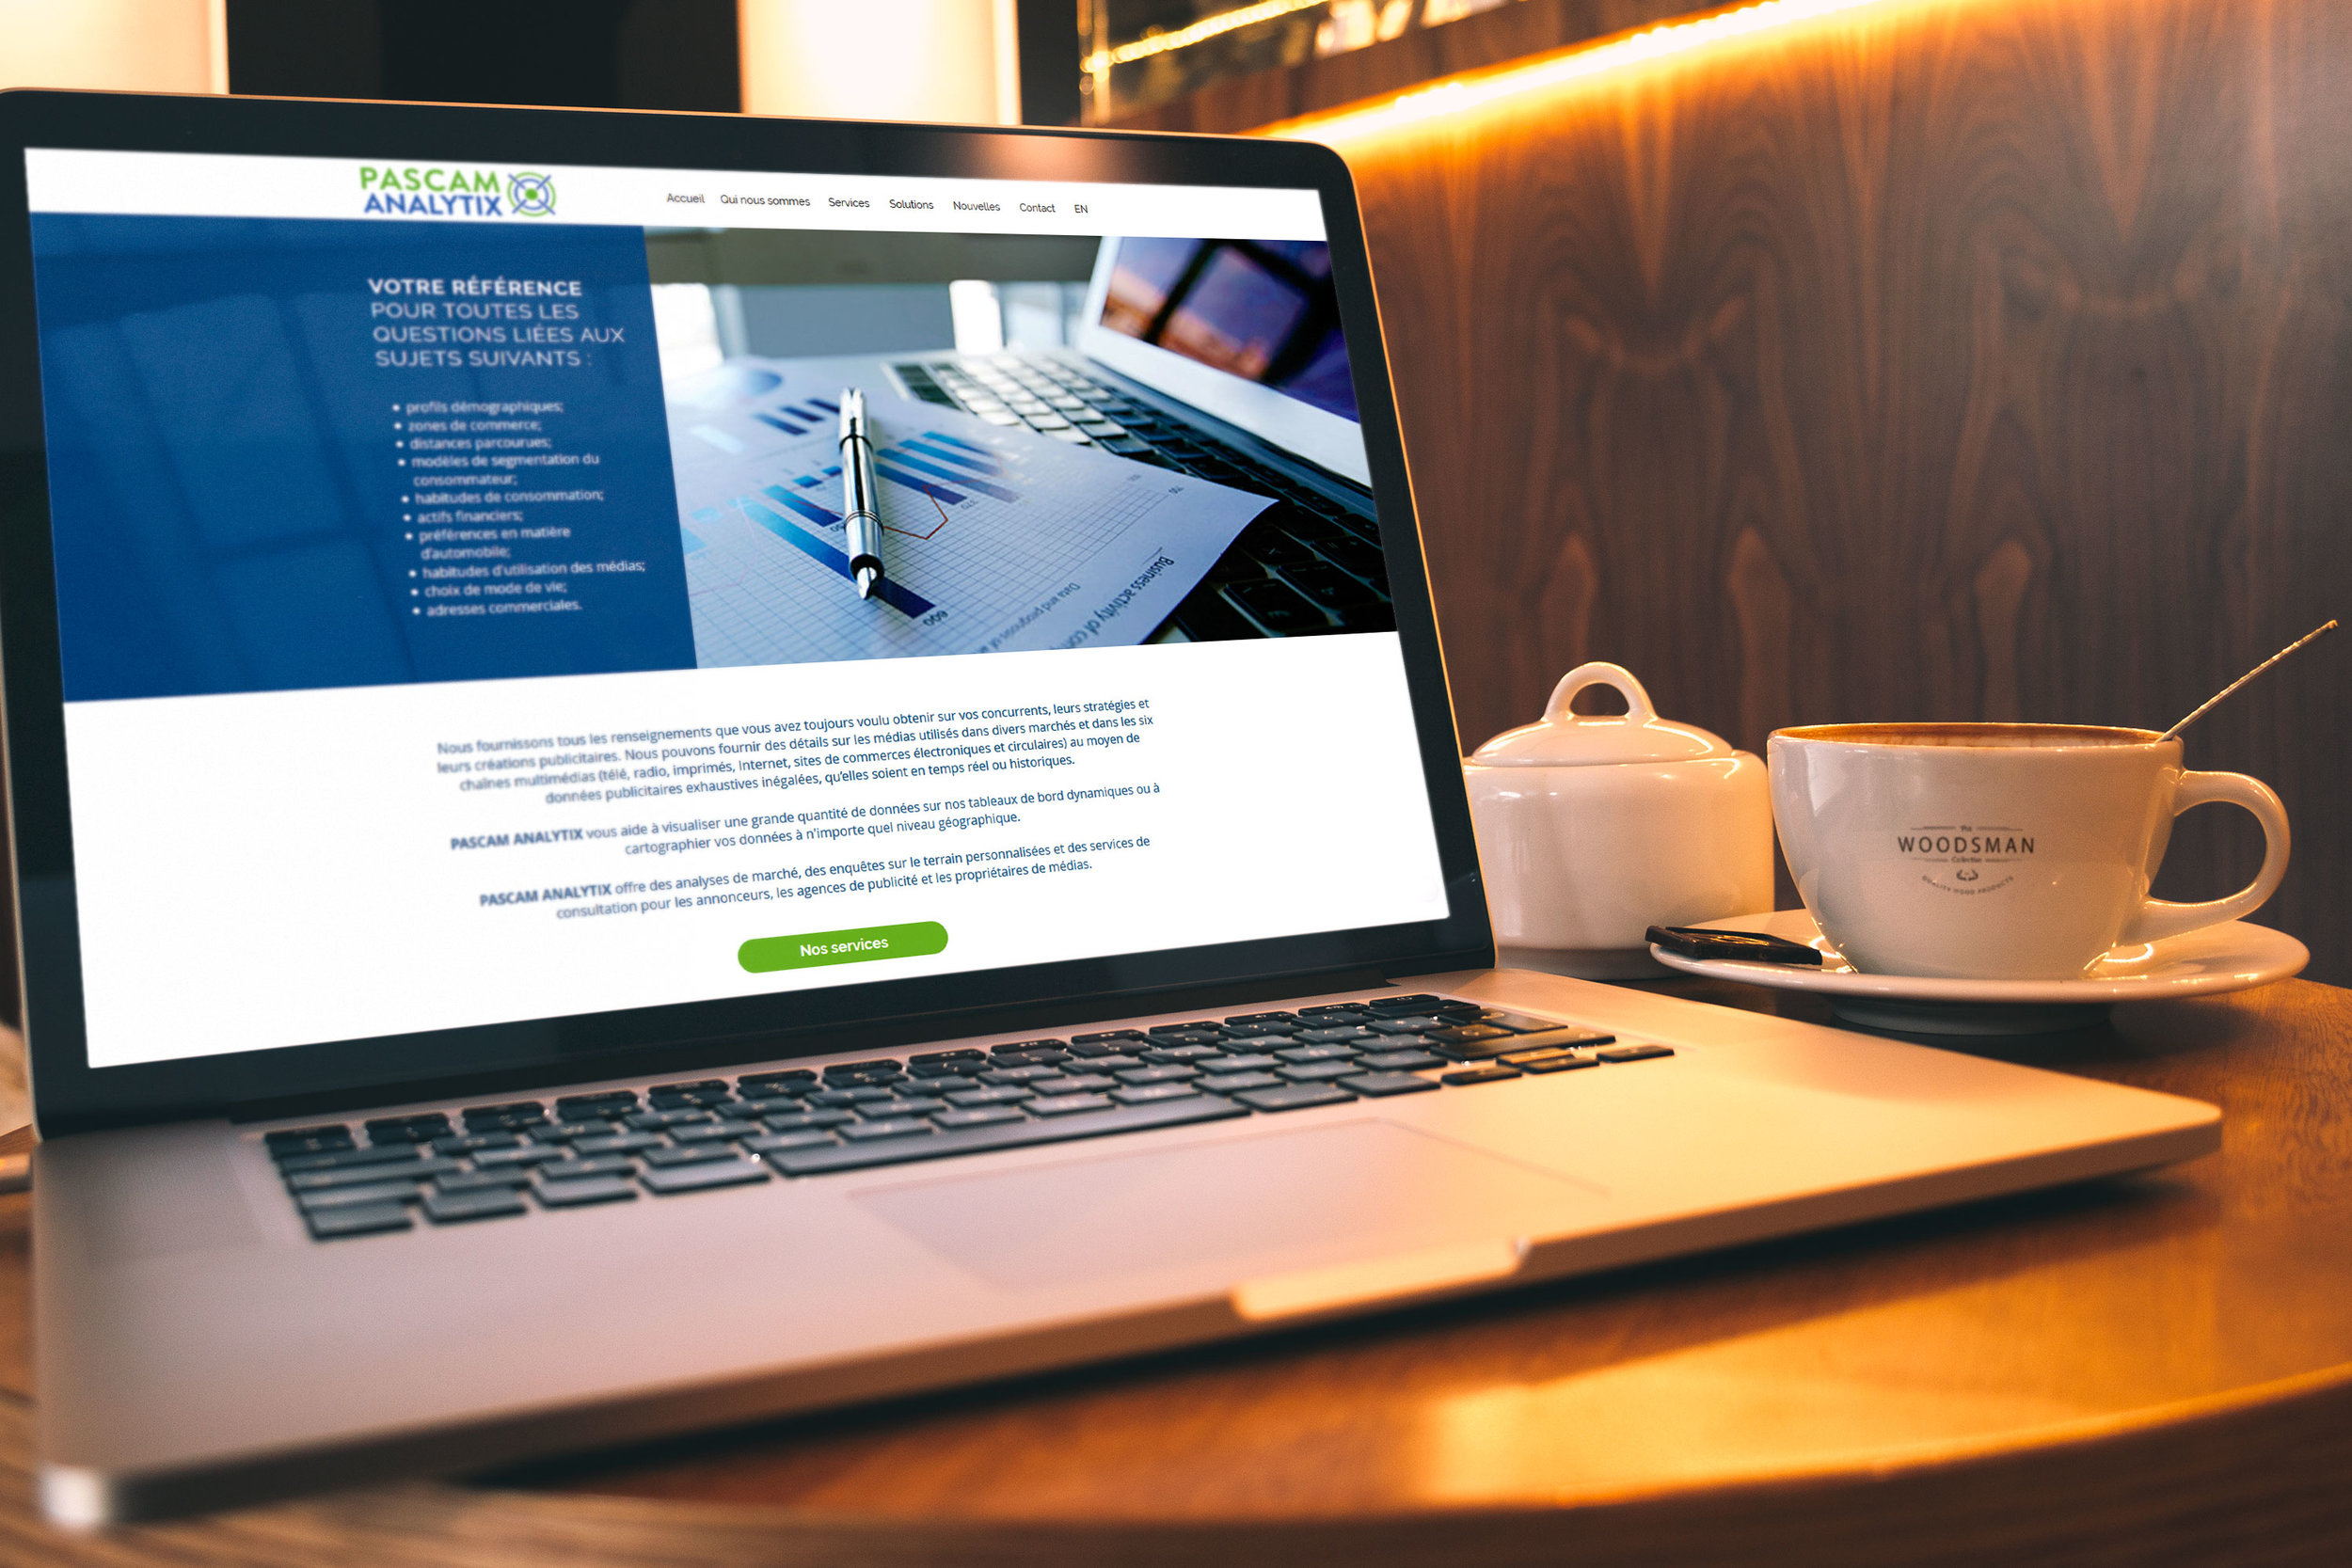 Macbook-Pro-And-Coffe-Cup-Mockup-.jpg